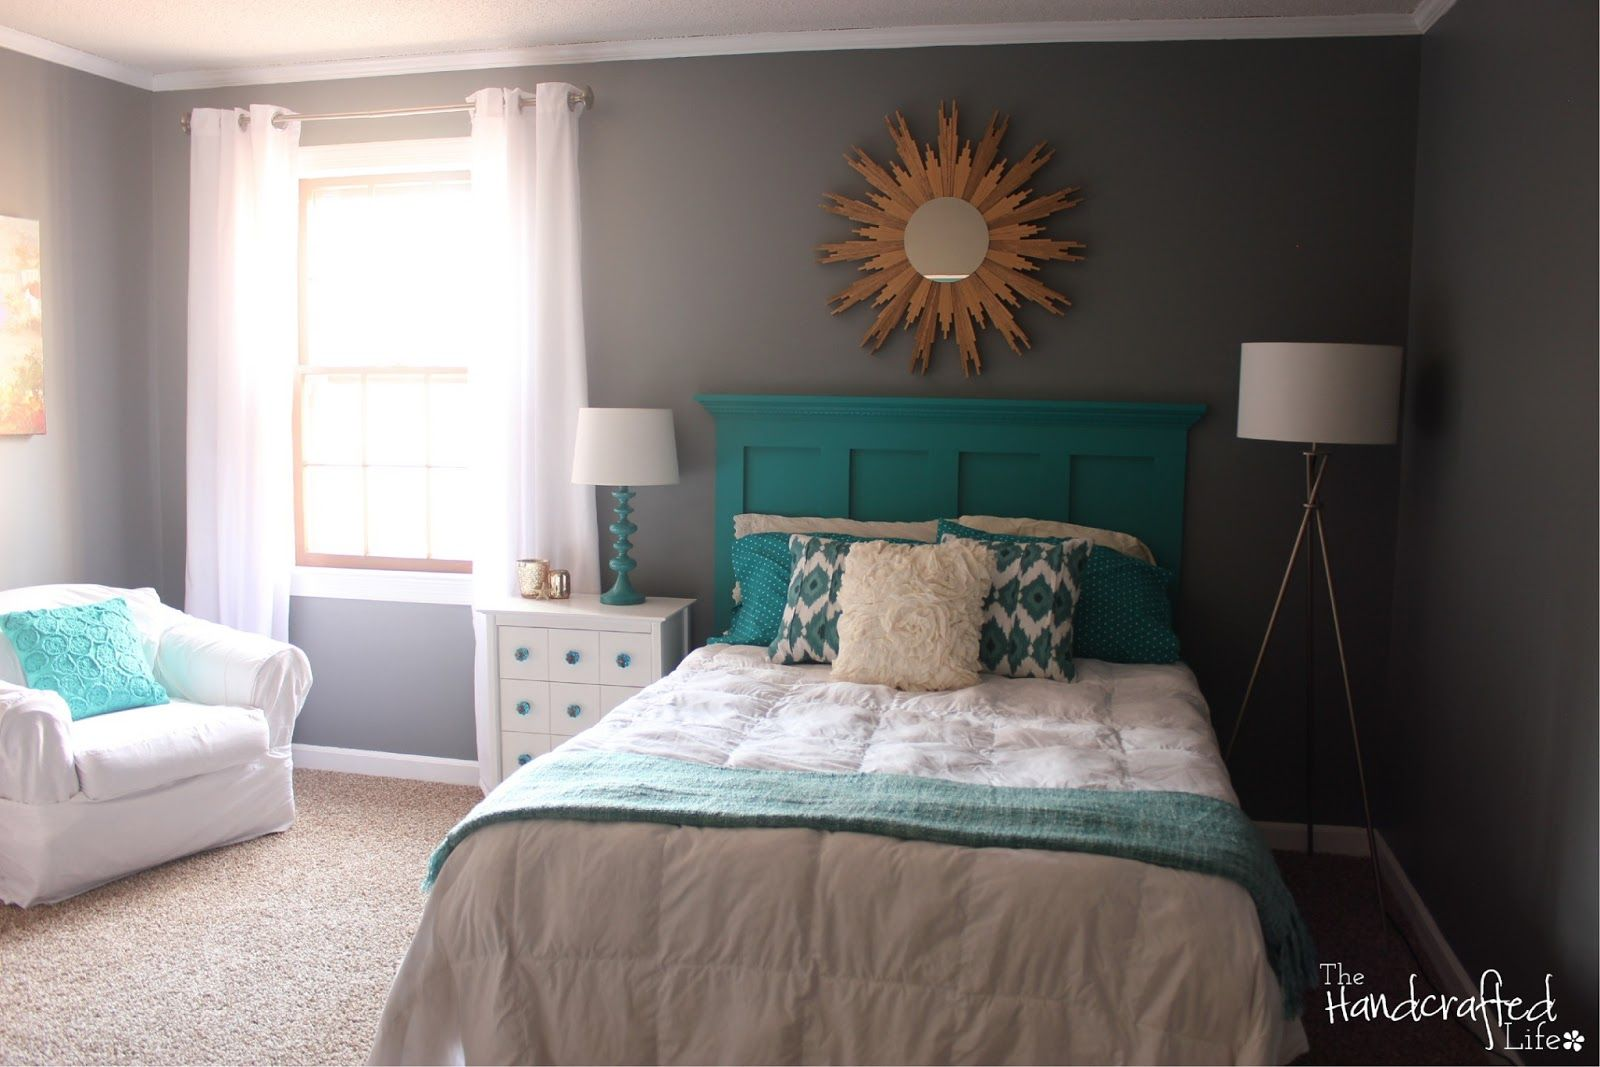 Bedroom Ideas With Teal Headboard Home Decor